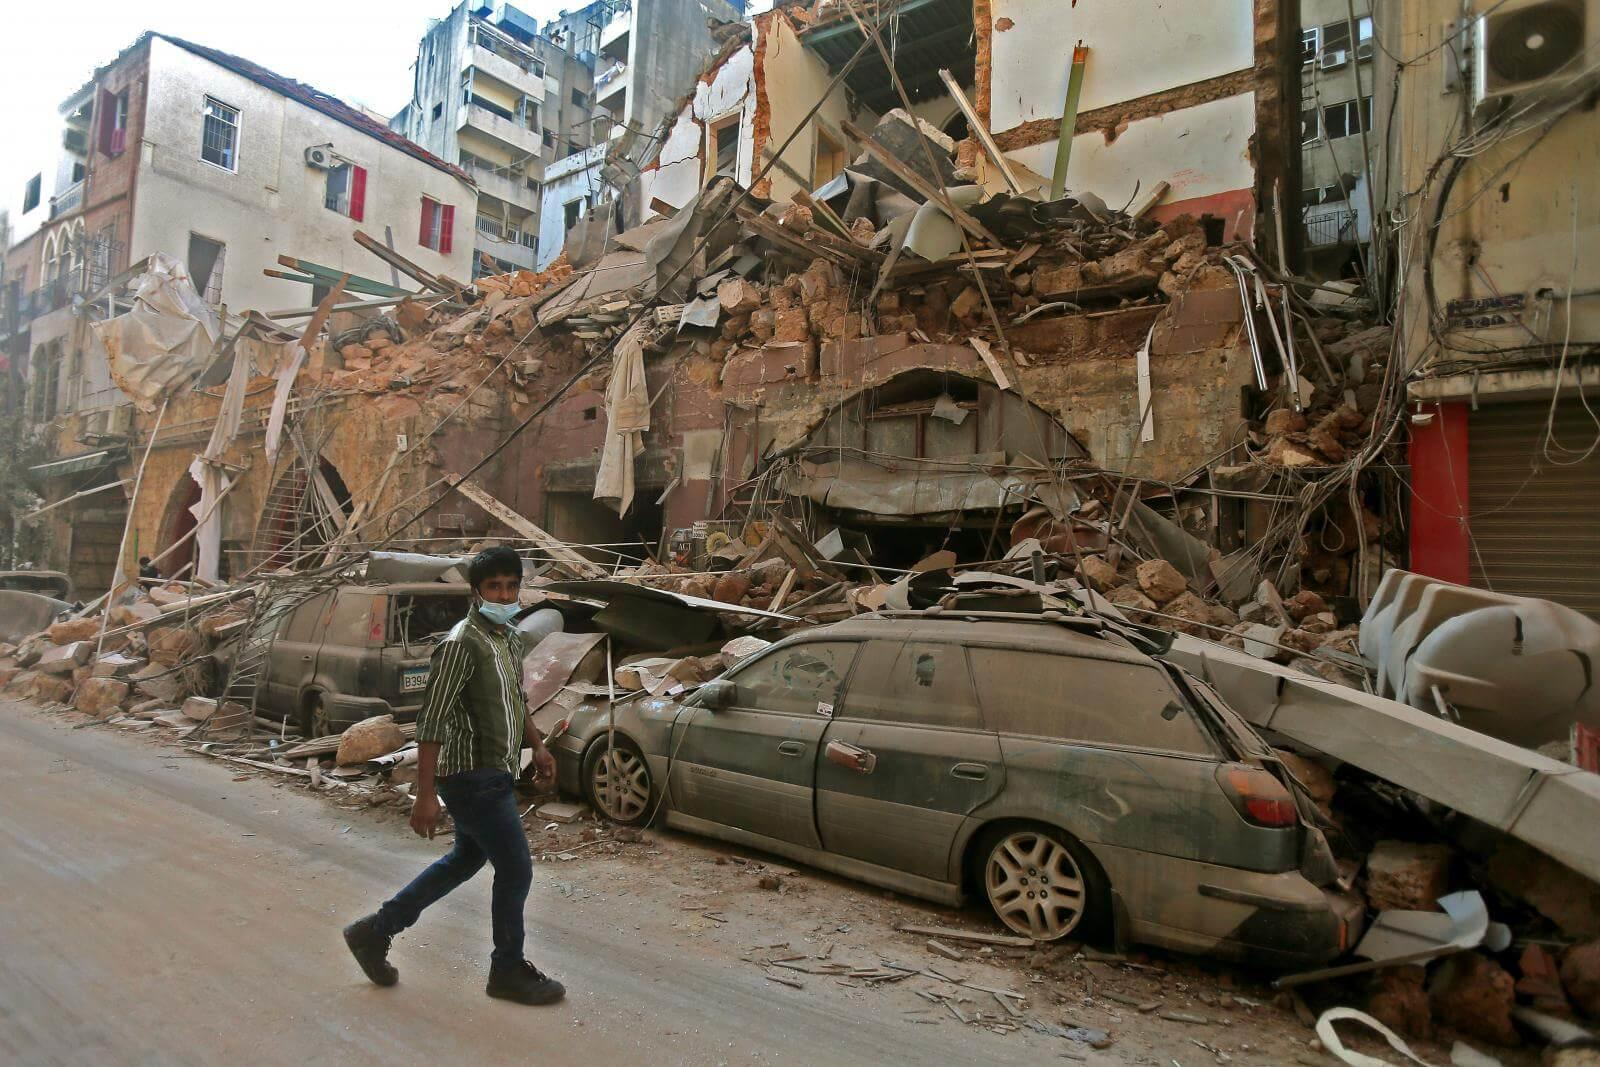 EMERGENCY IN LEBANON | Make an urgent donation today